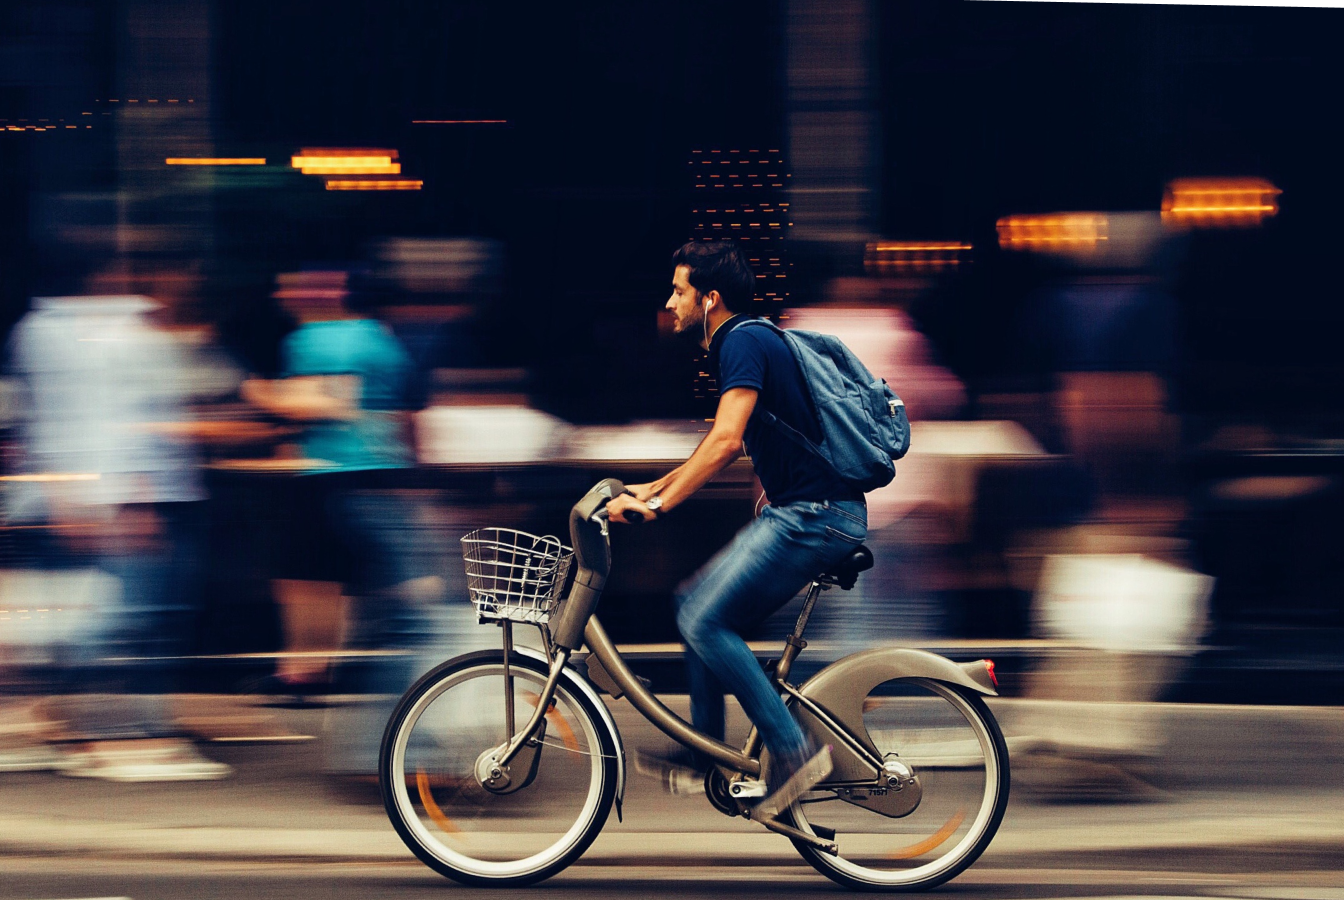 Man using an electrically assisted bicycle as an alternative to driving